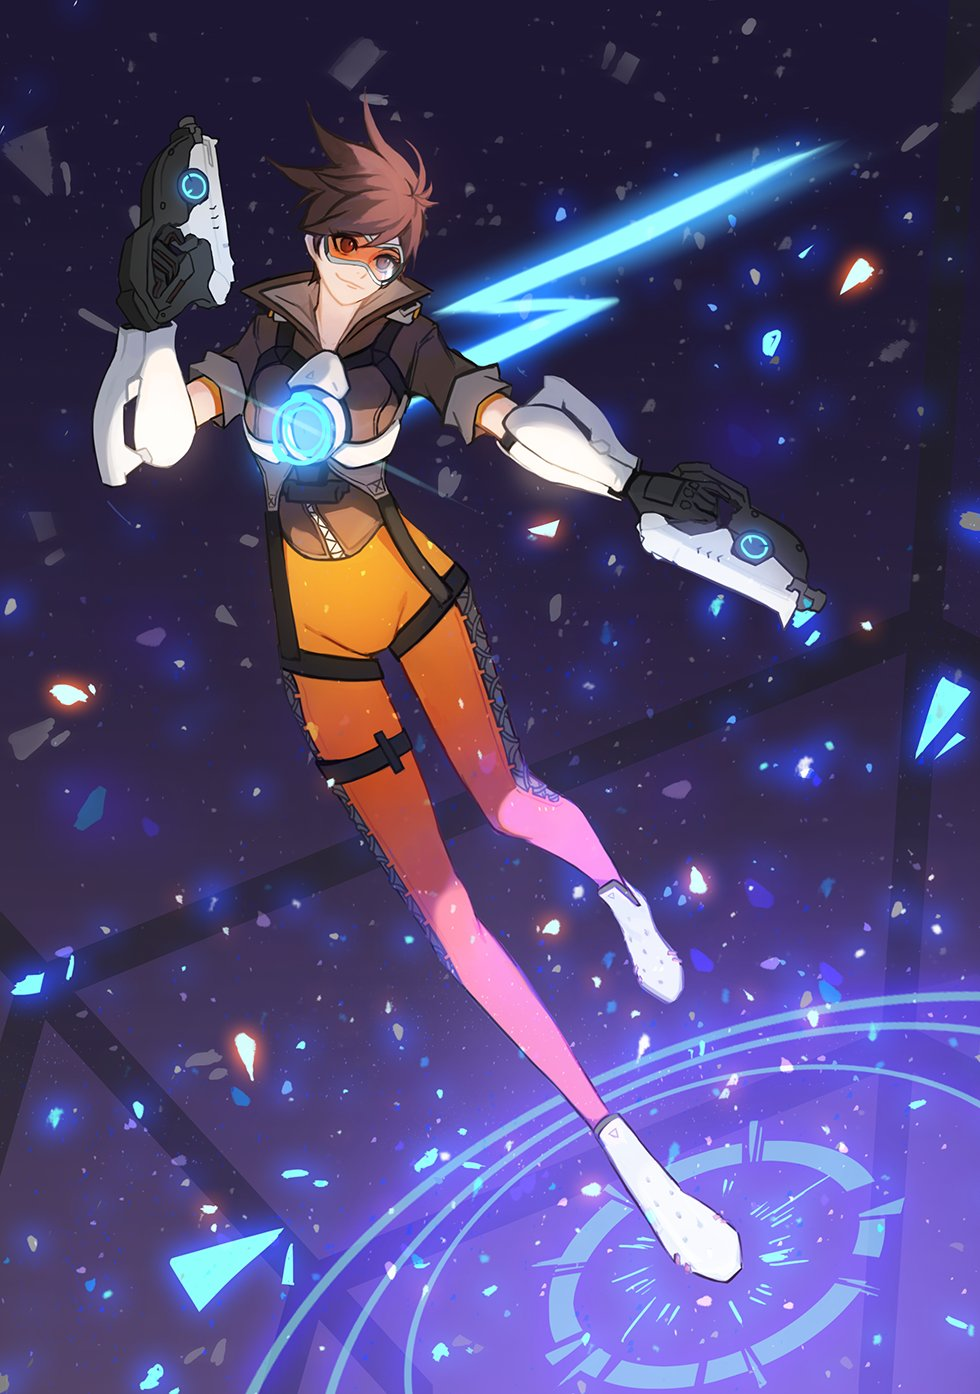 1girl bangs black_gloves bodysuit bomber_jacket breasts brown_eyes brown_hair brown_jacket closed_mouth cross-laced_clothes cross-laced_legwear dual_wielding fur_trim gloves goggles groin gun hand_up handgun harness highres holding holding_gun holding_weapon jacket leather leather_jacket midair neosnim overwatch pants shards shoes short_hair short_sleeves sleeves_rolled_up smile solo spiky_hair strap swept_bangs thigh_strap tight tight_pants tracer_(overwatch) vambraces weapon